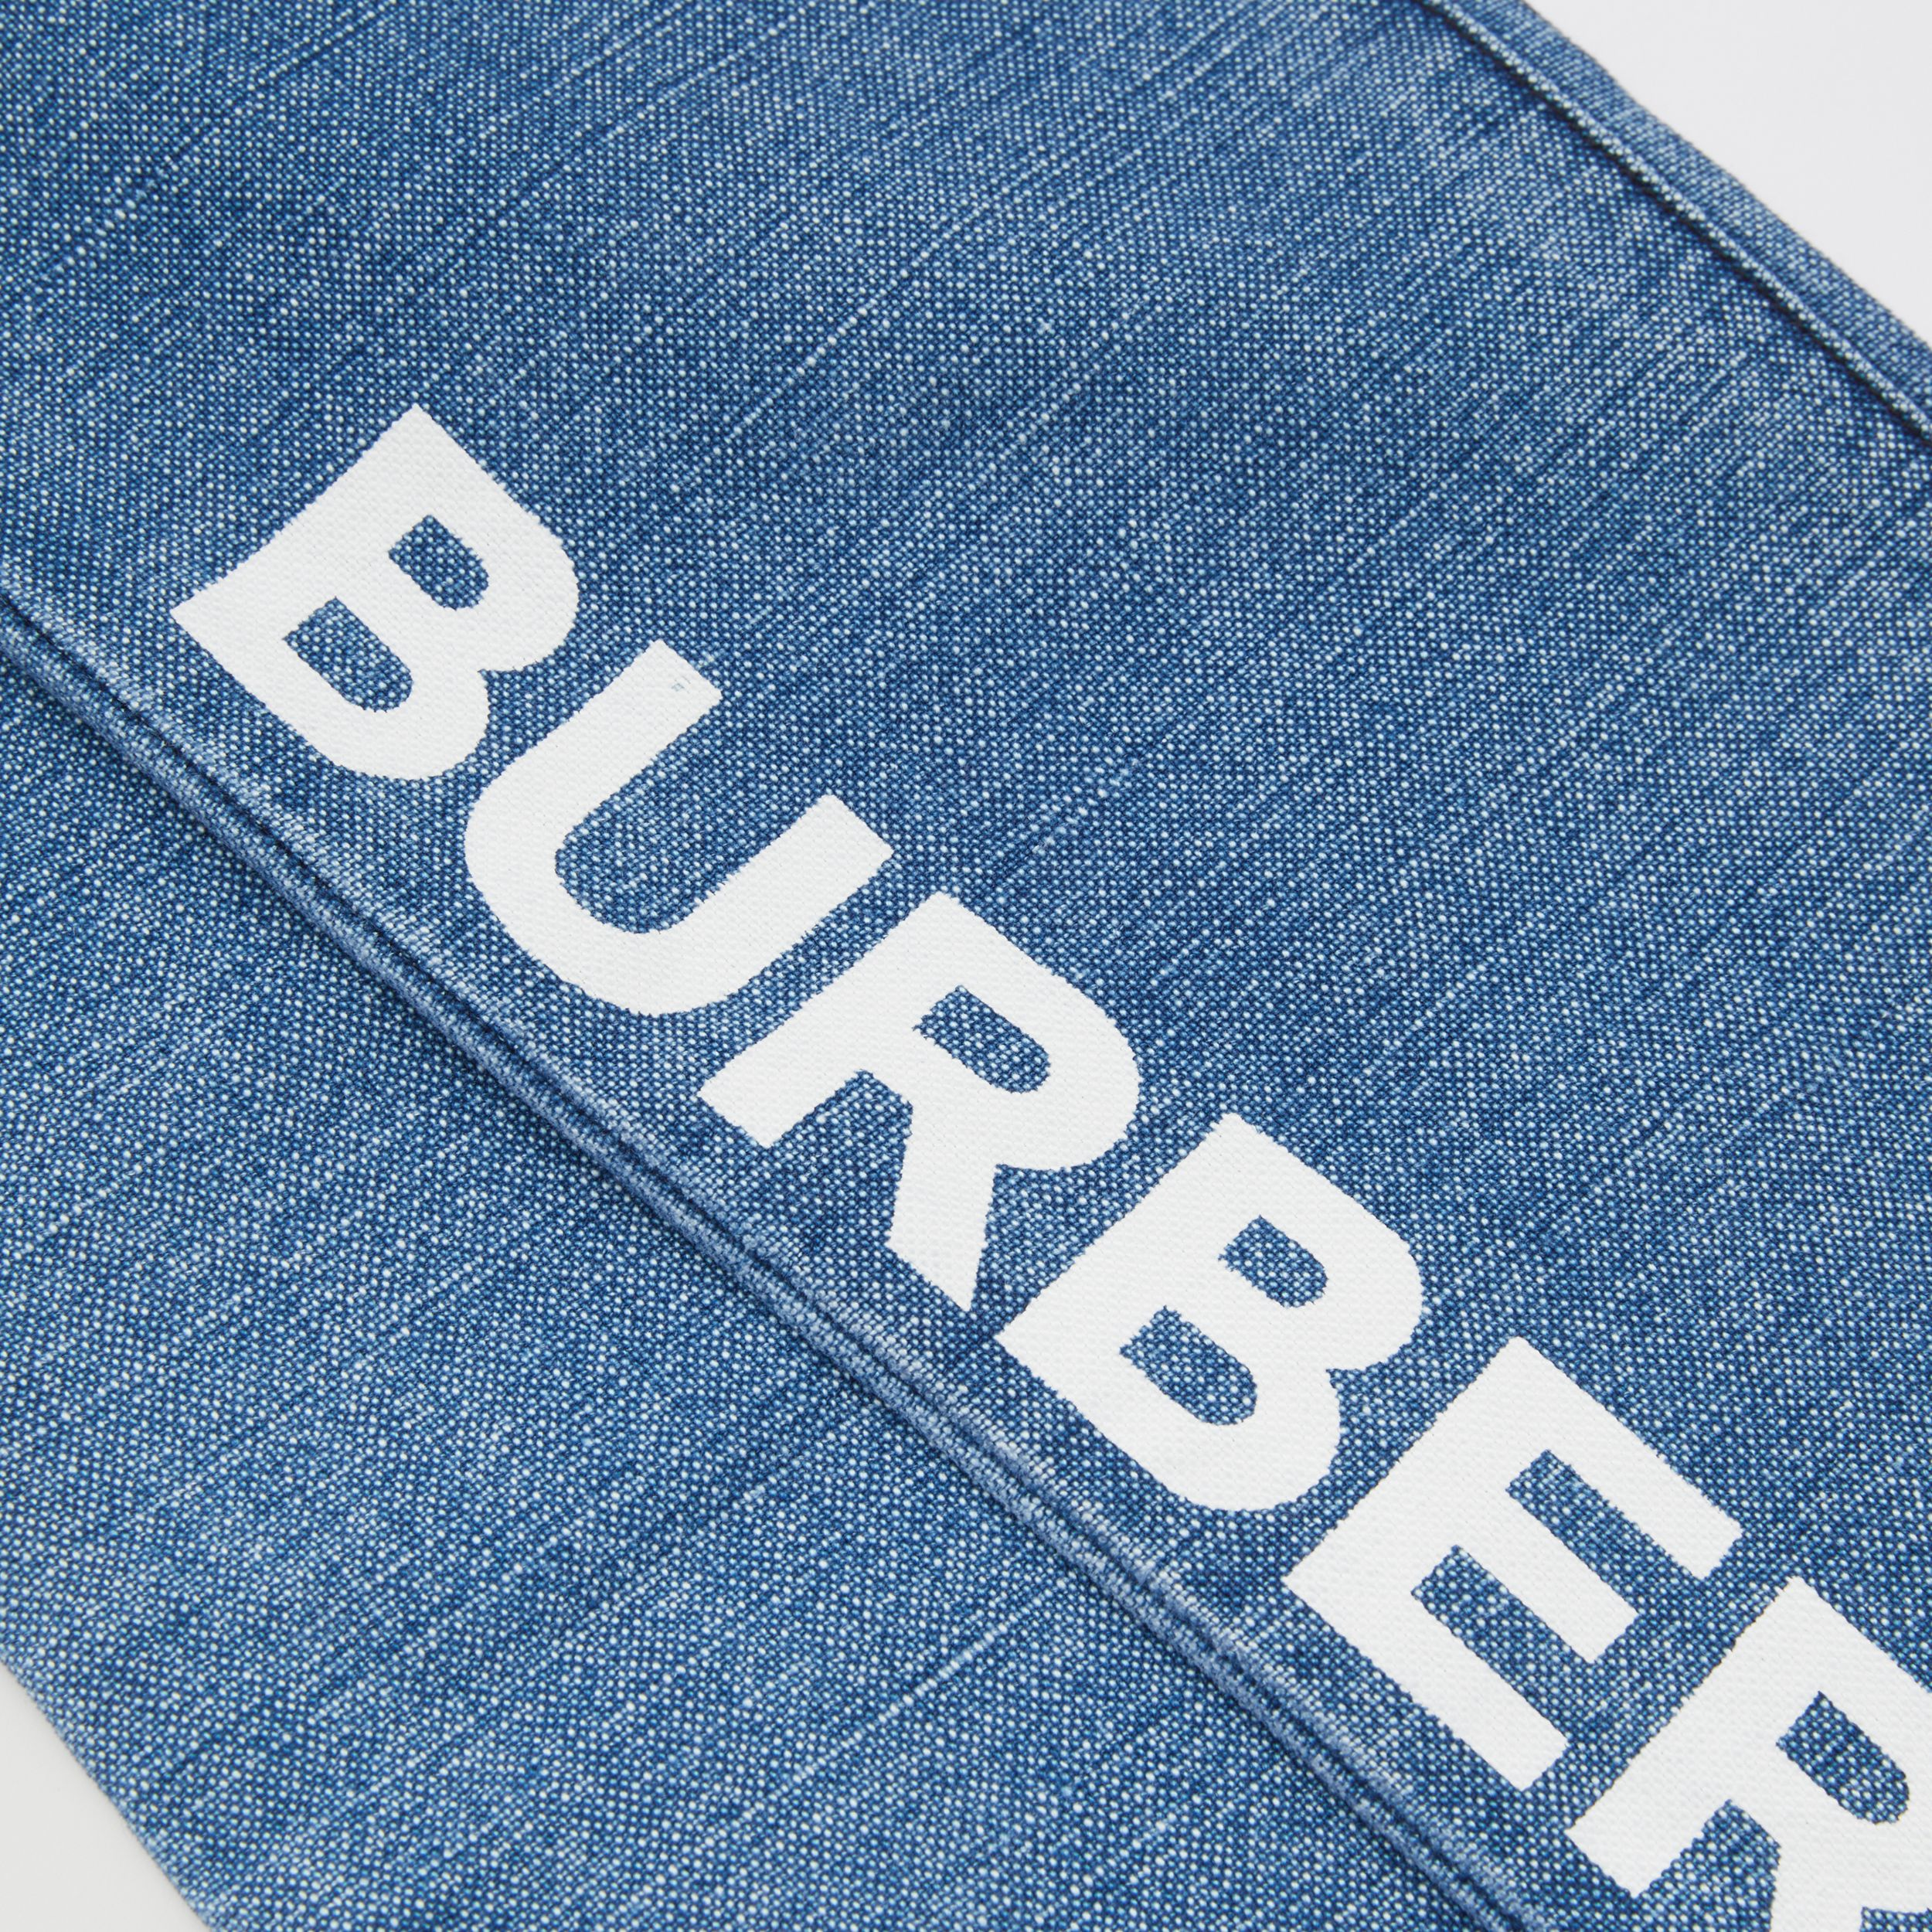 Logo Print Japanese Denim Jeans in Indigo | Burberry - 2